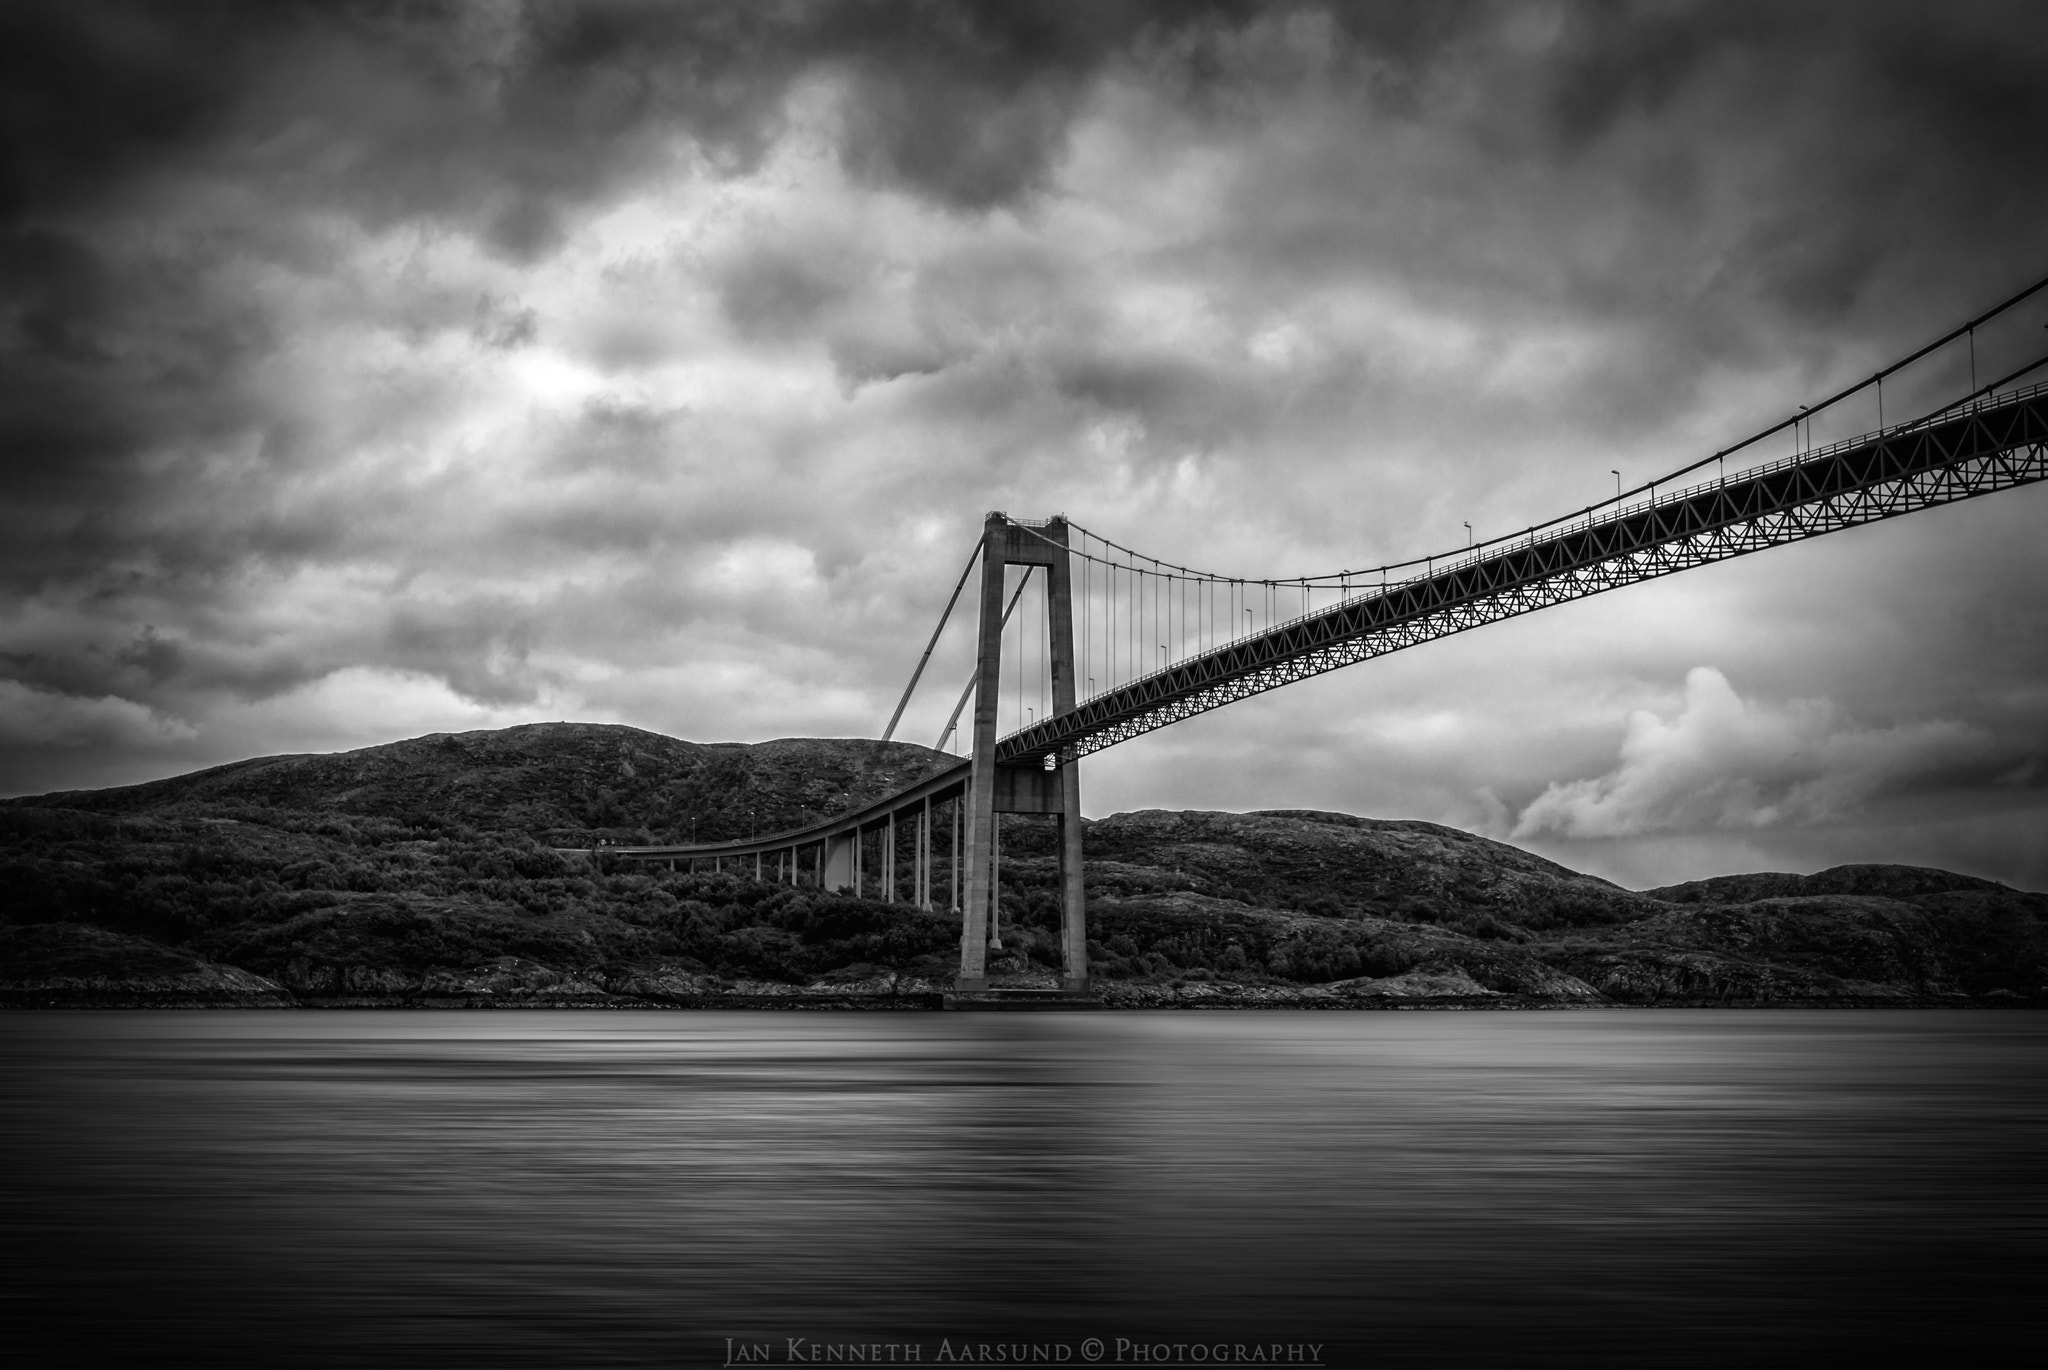 Photograph Suspension Bridge by Jan Kenneth Aarsund on 500px